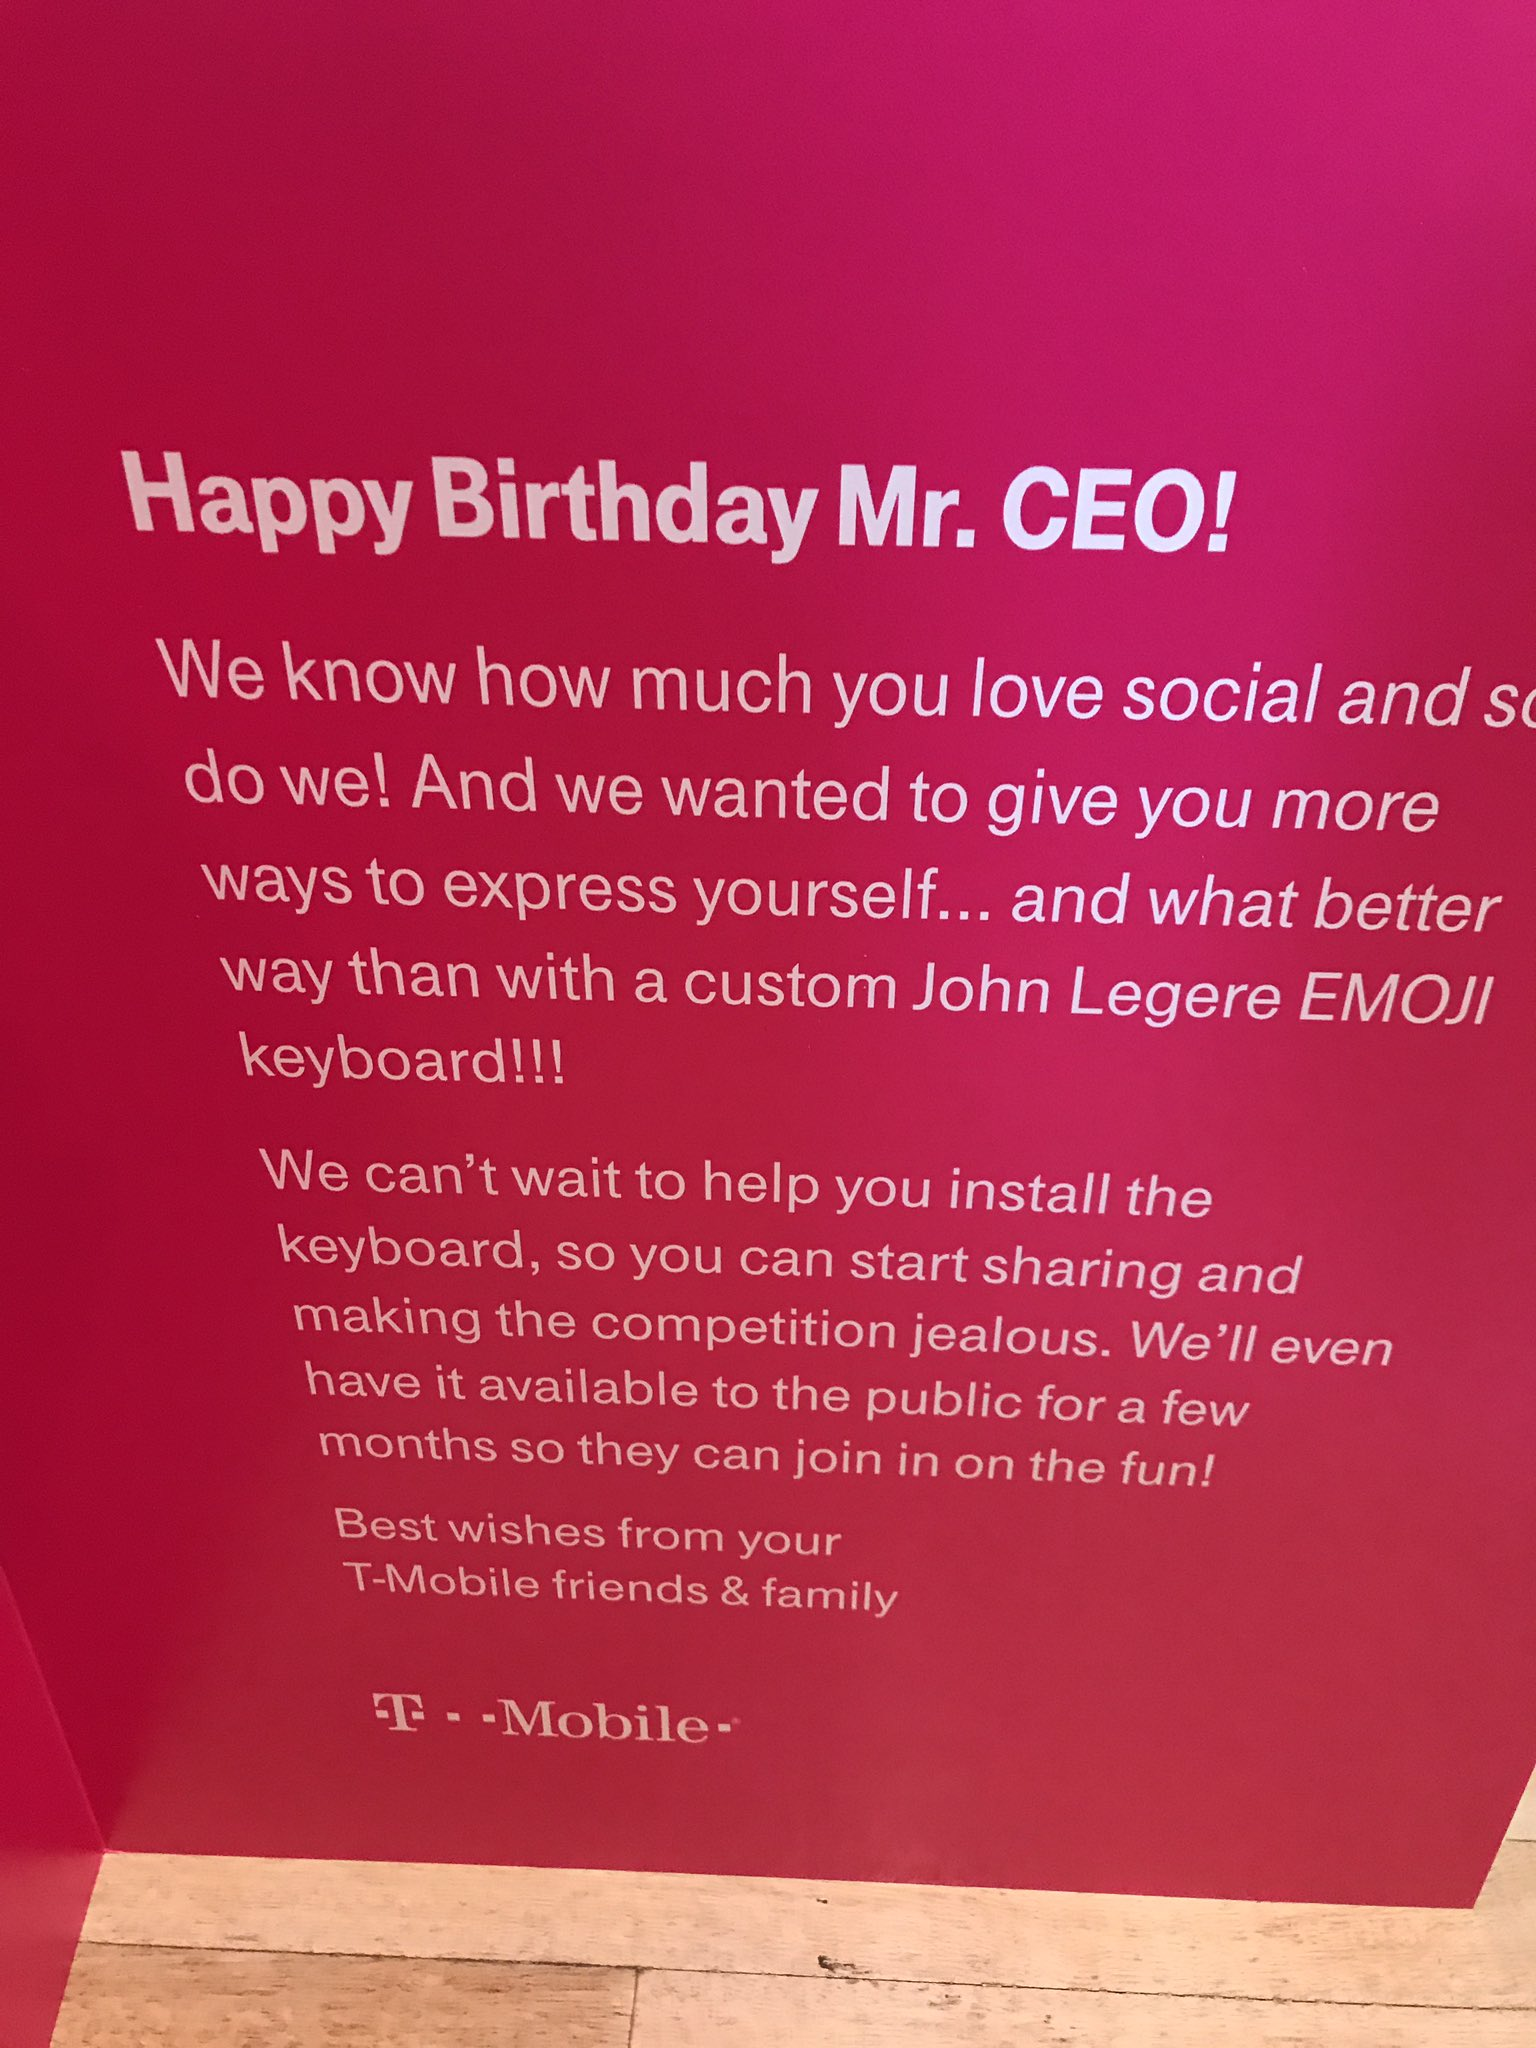 John Legere On Twitter Well This BirthdayCard Fromtmobile Suggests That Not Only Am Aid Going To Get A LegereEmoji Keyboard Its Be Available